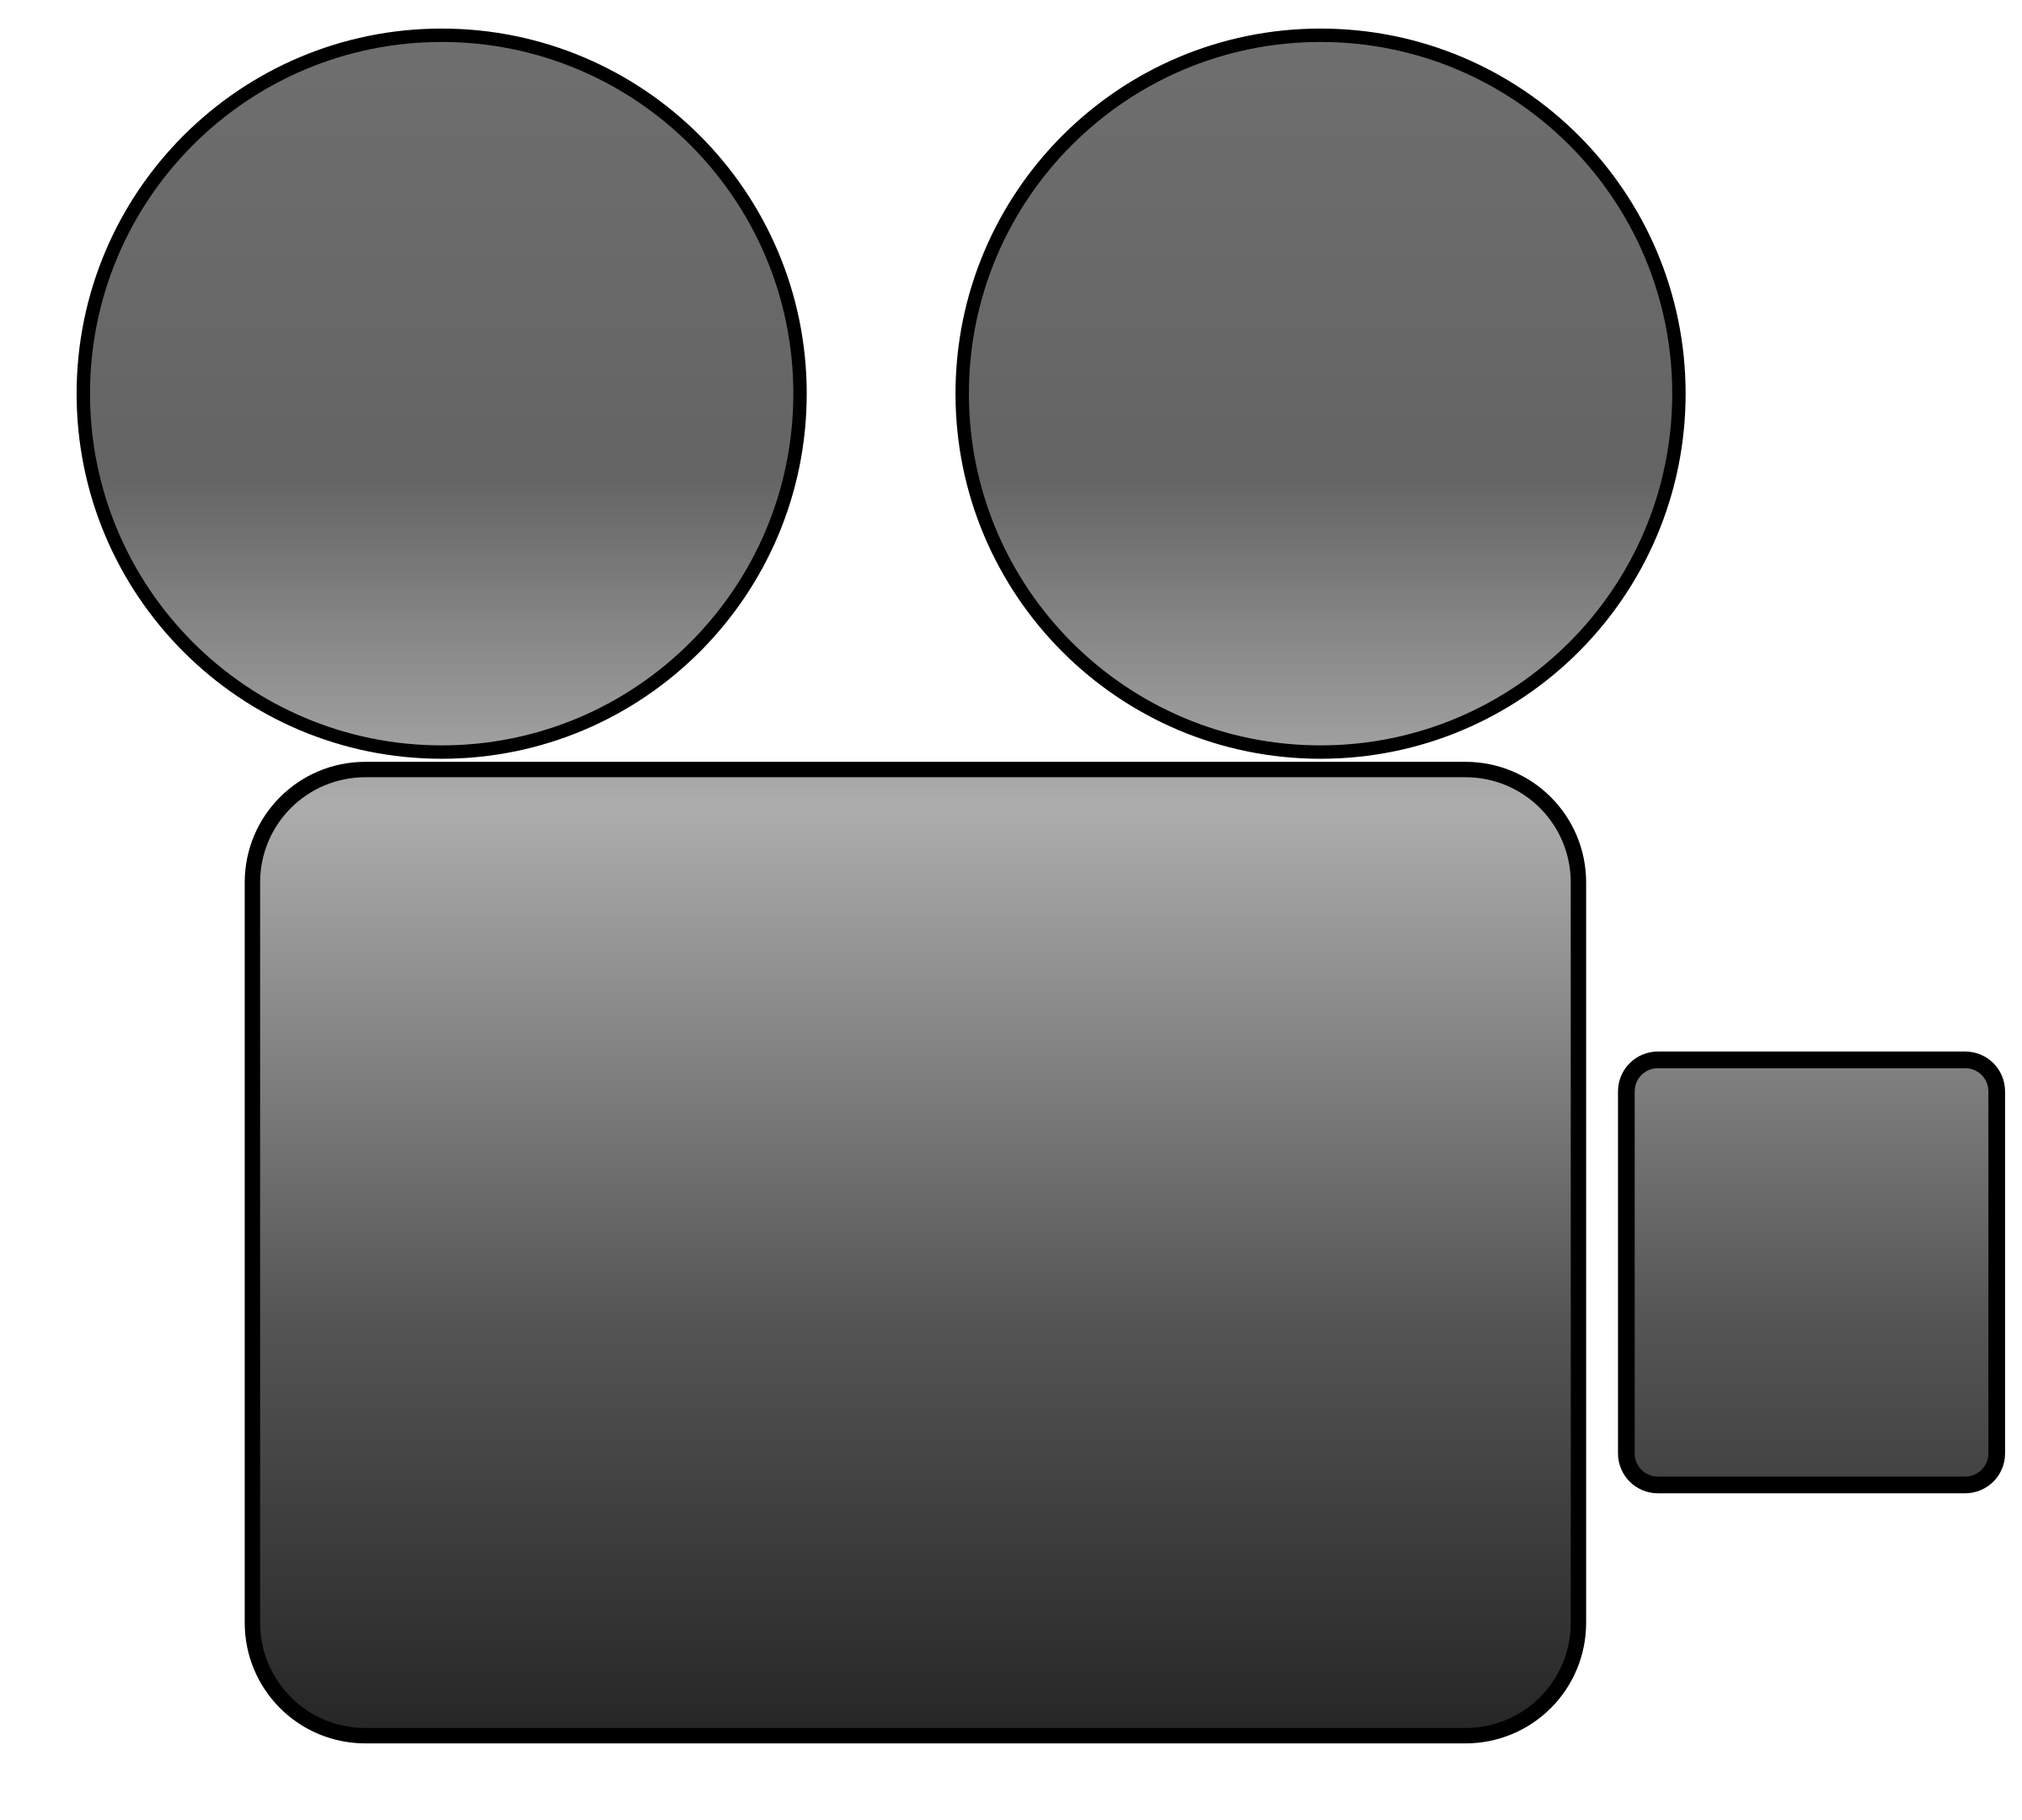 Video Camera Sign Icon. BIG IMAGE (PNG)-Video camera sign icon. BIG IMAGE (PNG)-13